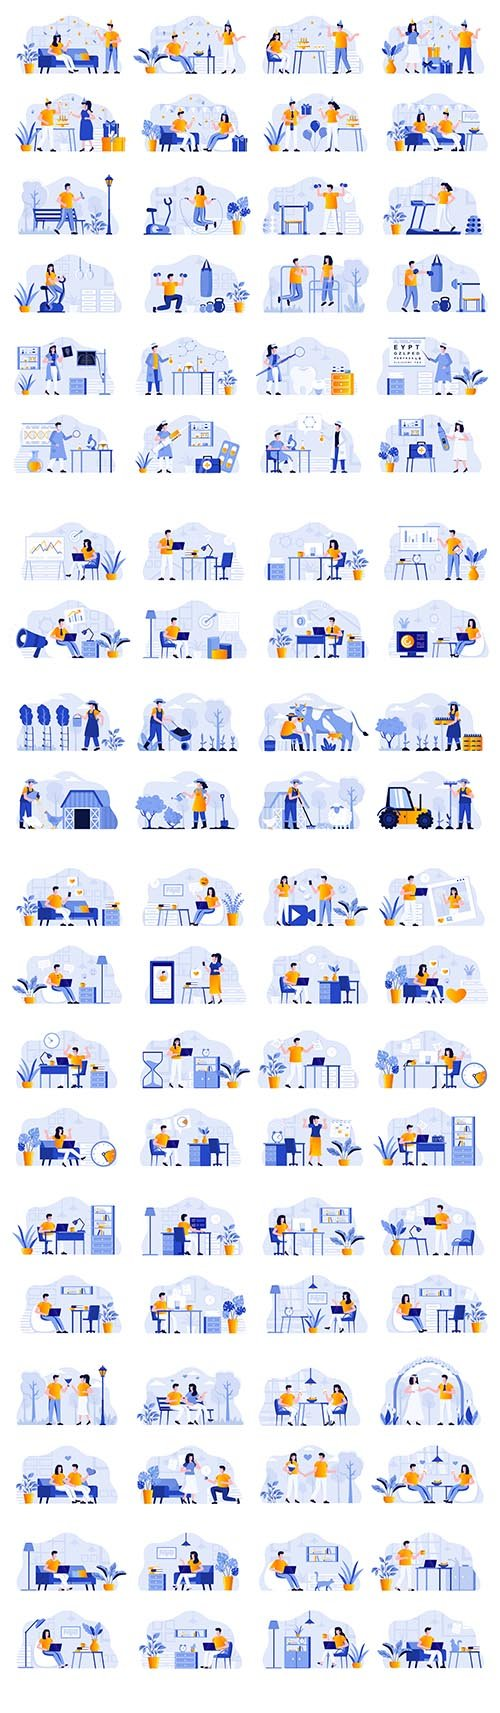 Business Scenes Bundle with People Characters Flat Illustration Vol 2